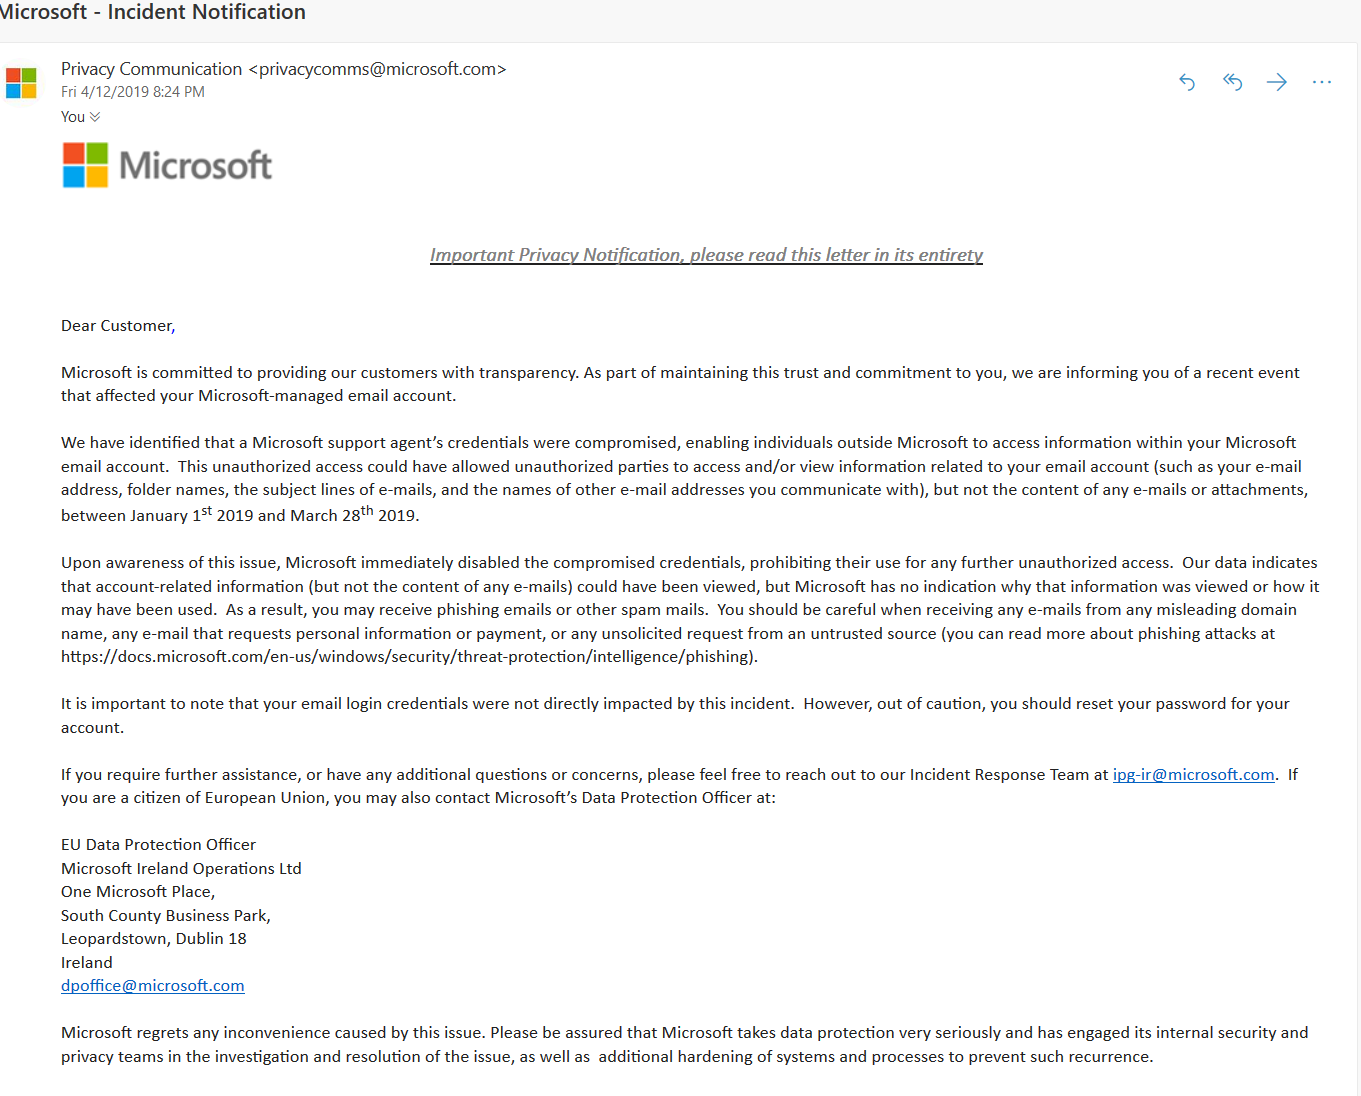 Attackers hacked support agent to access Microsoft Outlook email accounts